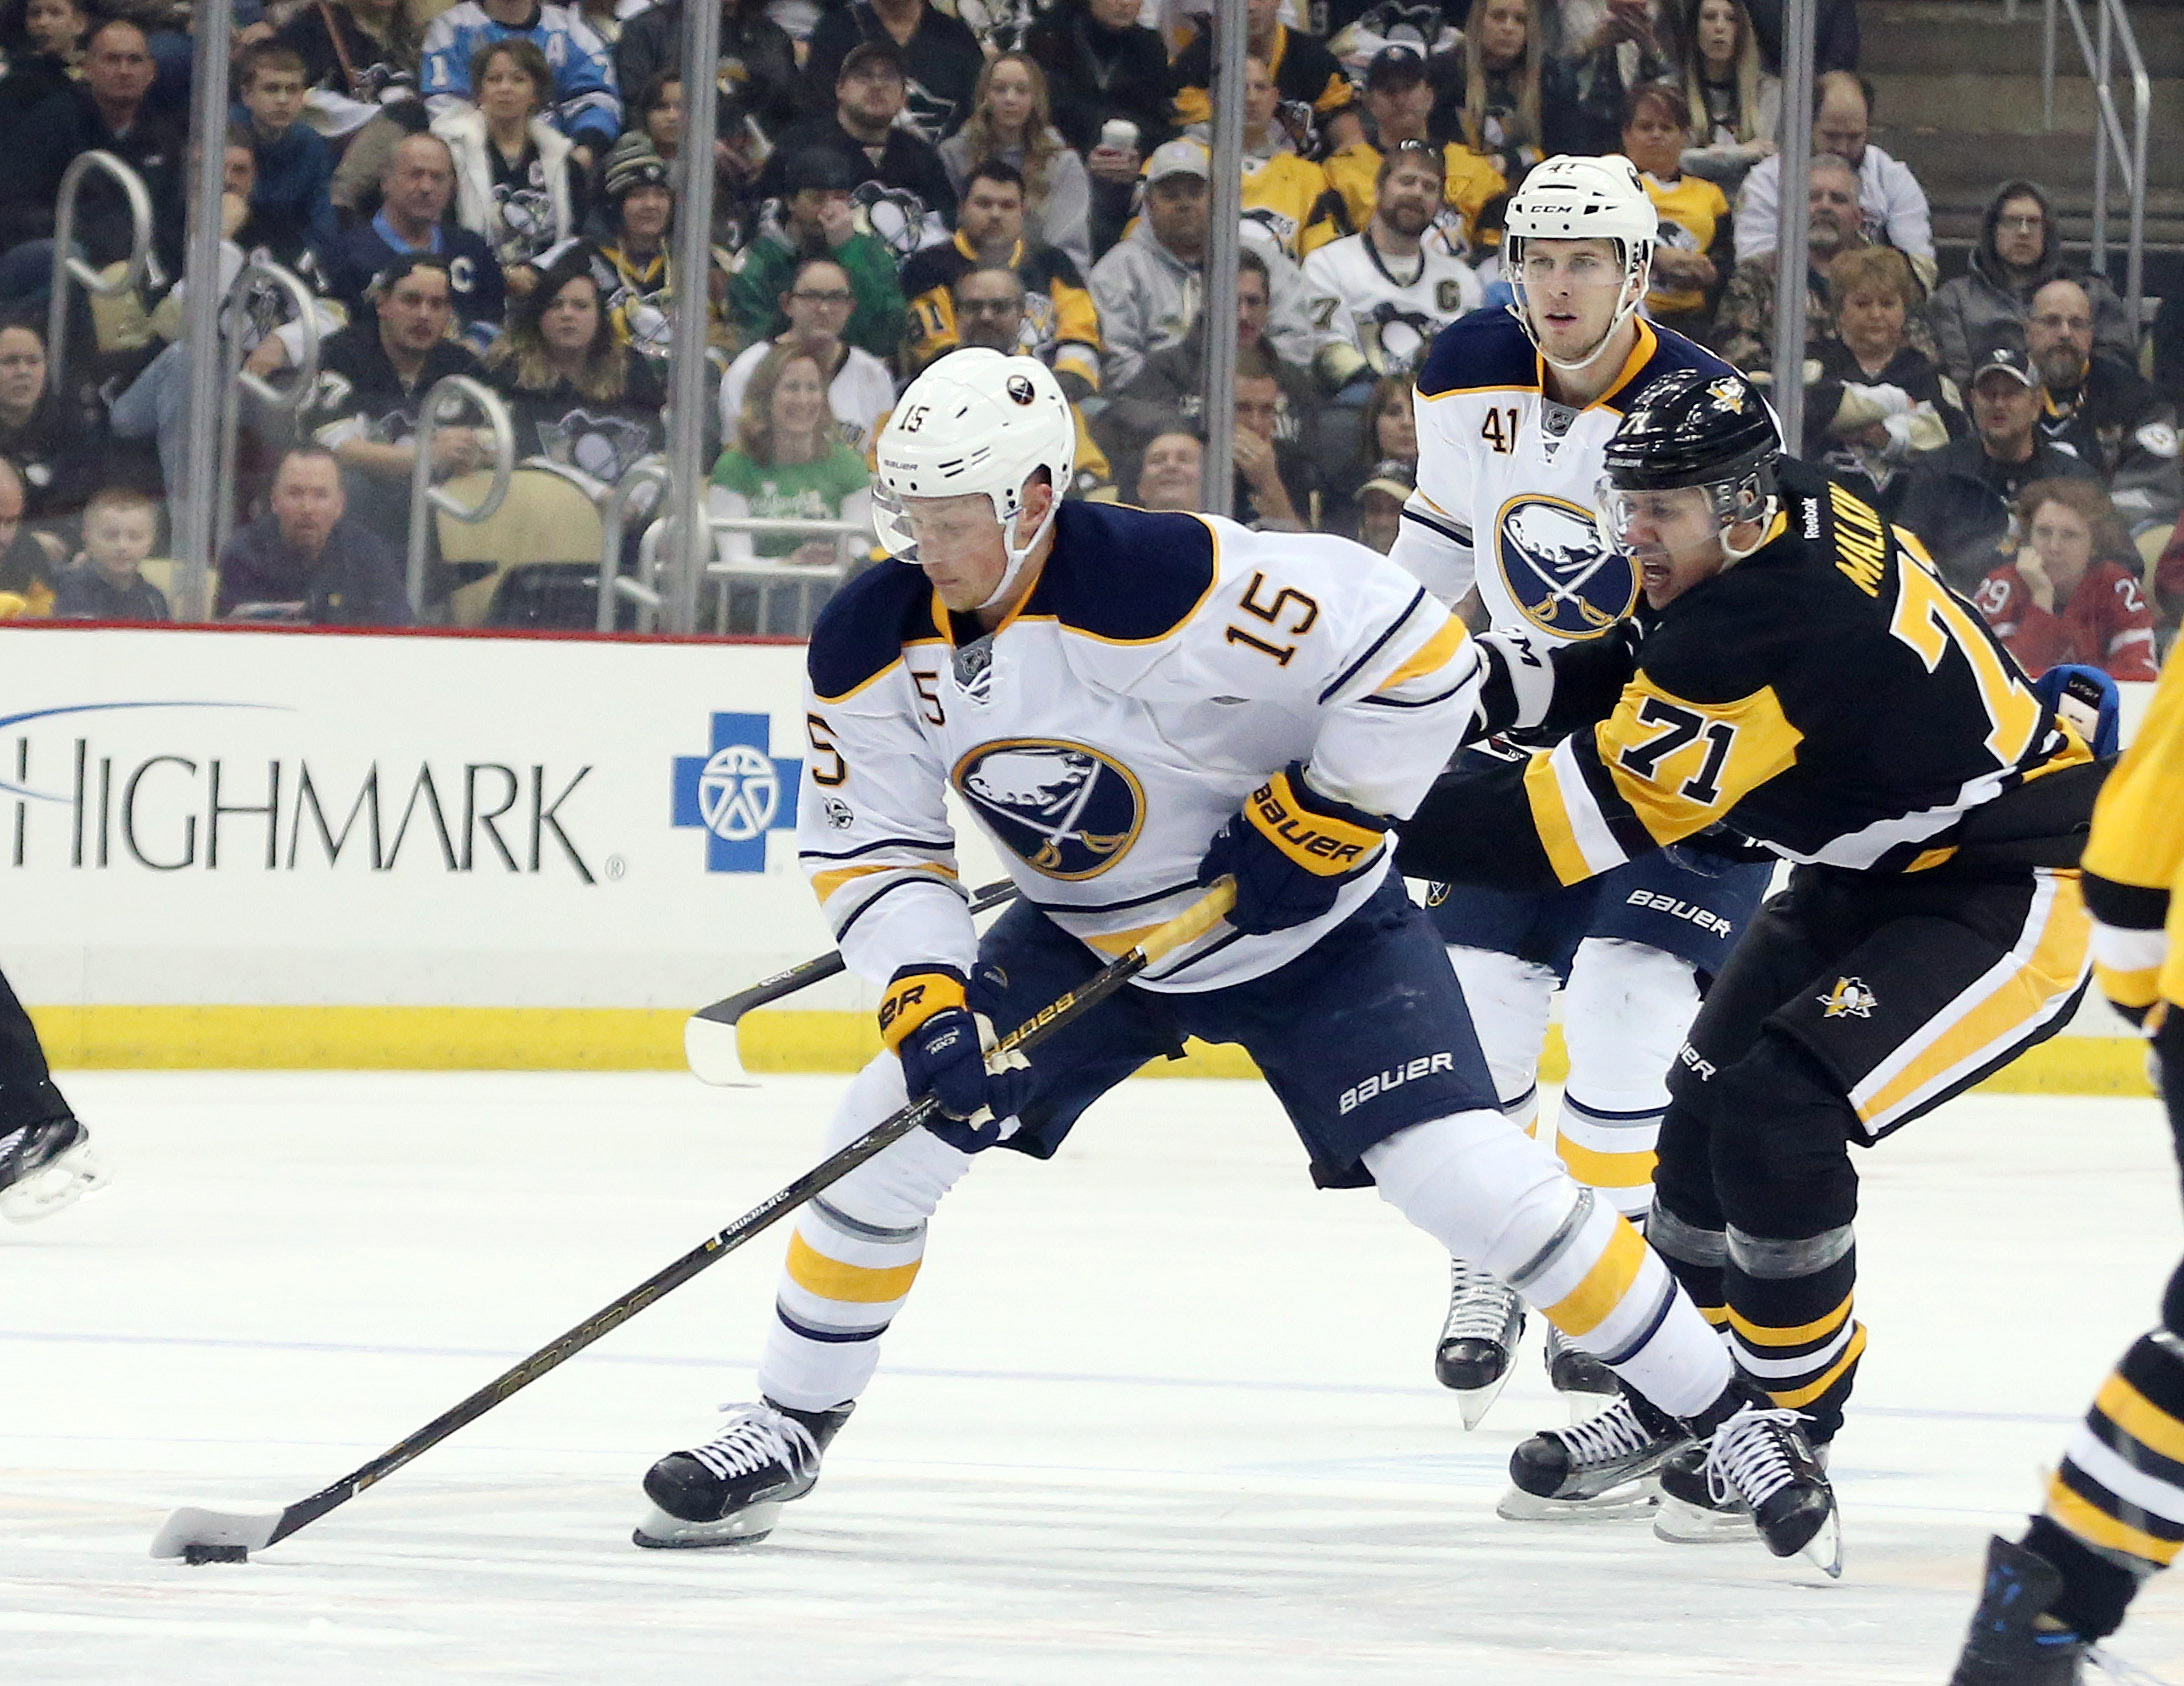 The Sabres' Jack Eichel and the Penguins' Evgeni Malkin both scored Sunday. (USA TODAY Sports)